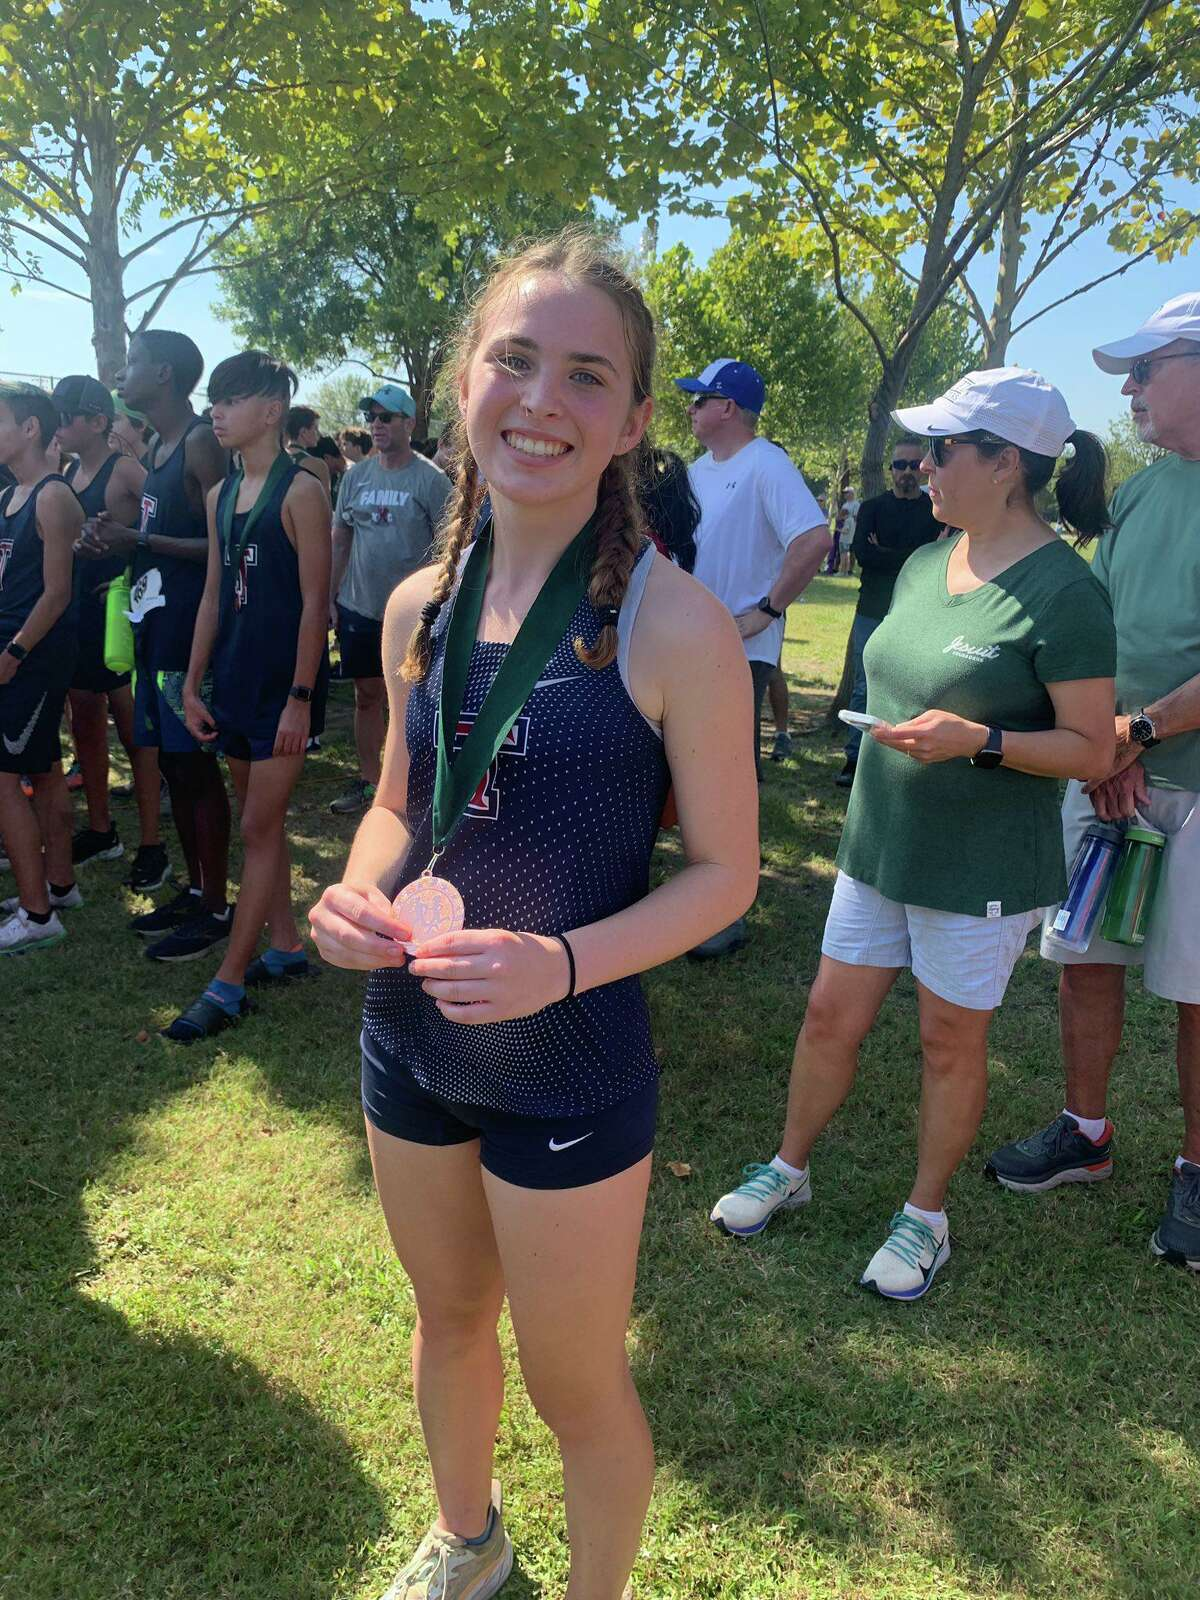 Tompkins junior Courtney Richman maintained her medal streak with a 10th-place finish among more than 280 runners in the girls 6A race at the McNeil Invitational in Round Rock.